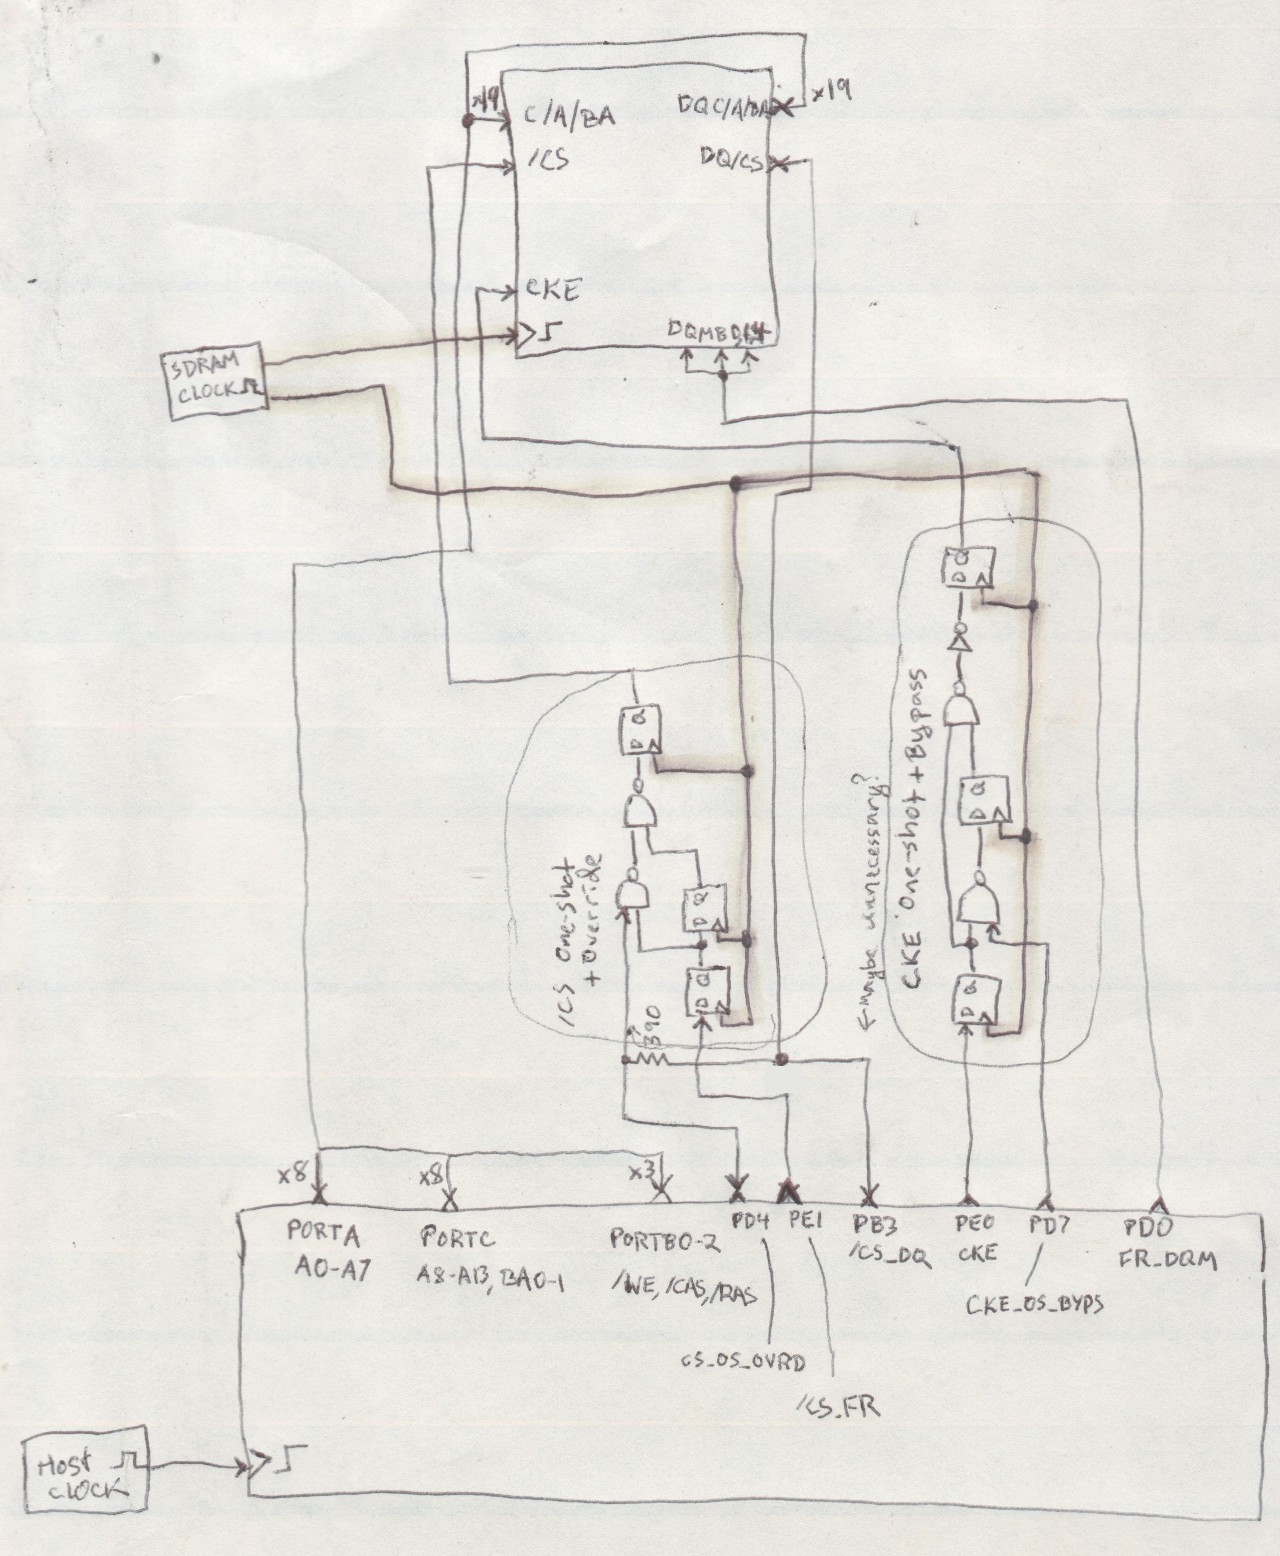 Project Sdramthingzero 133ms S 32 Bit Logic Analyzer D Latch Diagram Of Those Latches To Function But There Are Some Extras Thrown In For The Purpose More Predictable Gate Delays Eg Cke One Shot Circuit